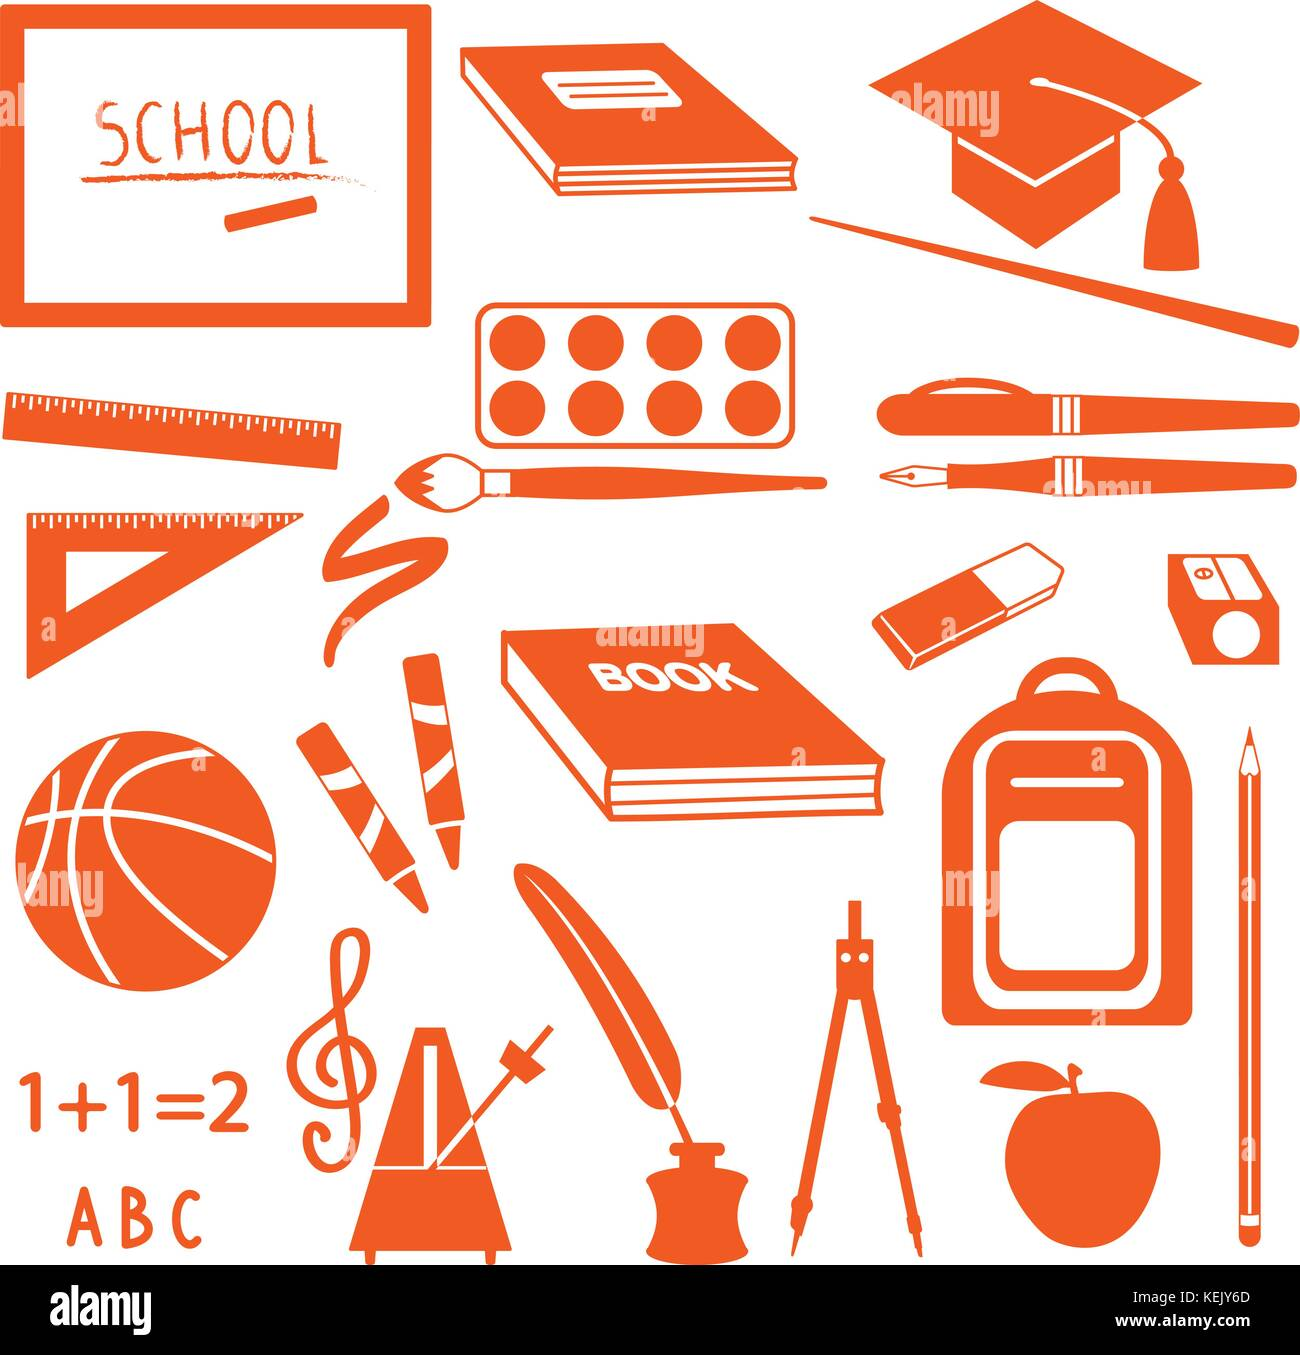 School symbols and supplies vector icons stock vector art school symbols and supplies vector icons buycottarizona Image collections